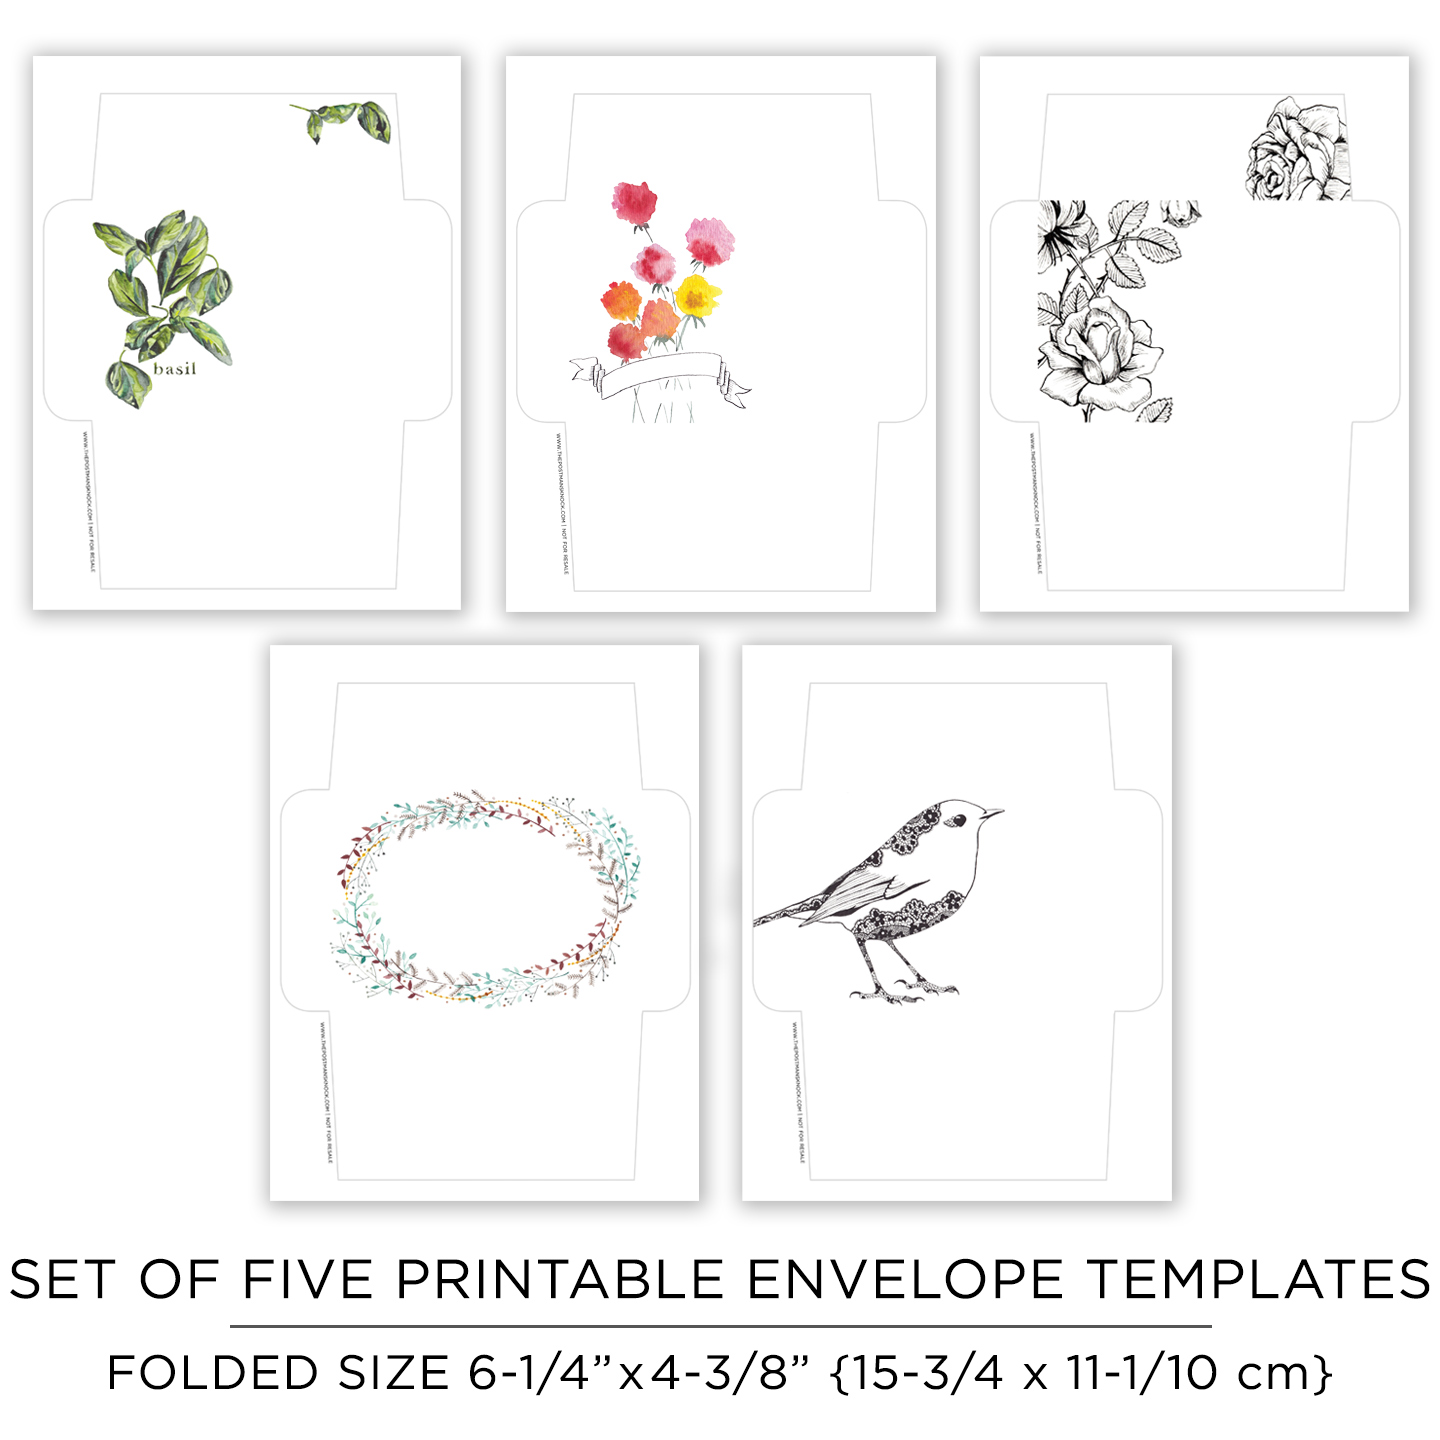 photograph about Printable Envelopes Templates identify Printable Deliver Artwork Envelope Templates